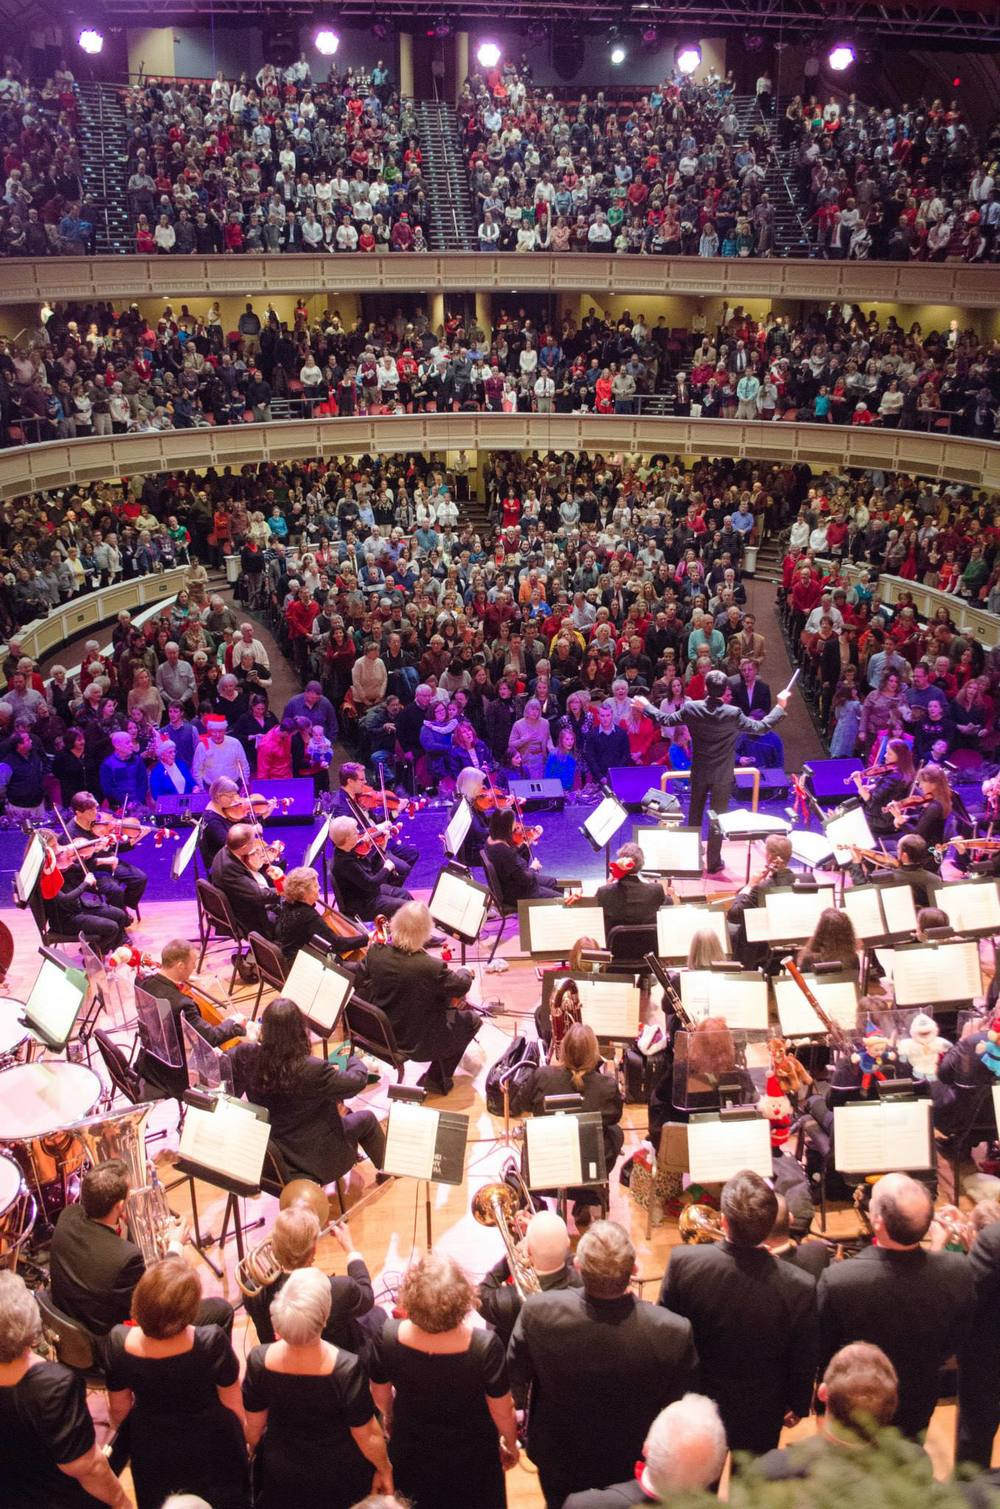 The Portland Symphony Orchestra and the Magic of Christmas audience sing along -2014